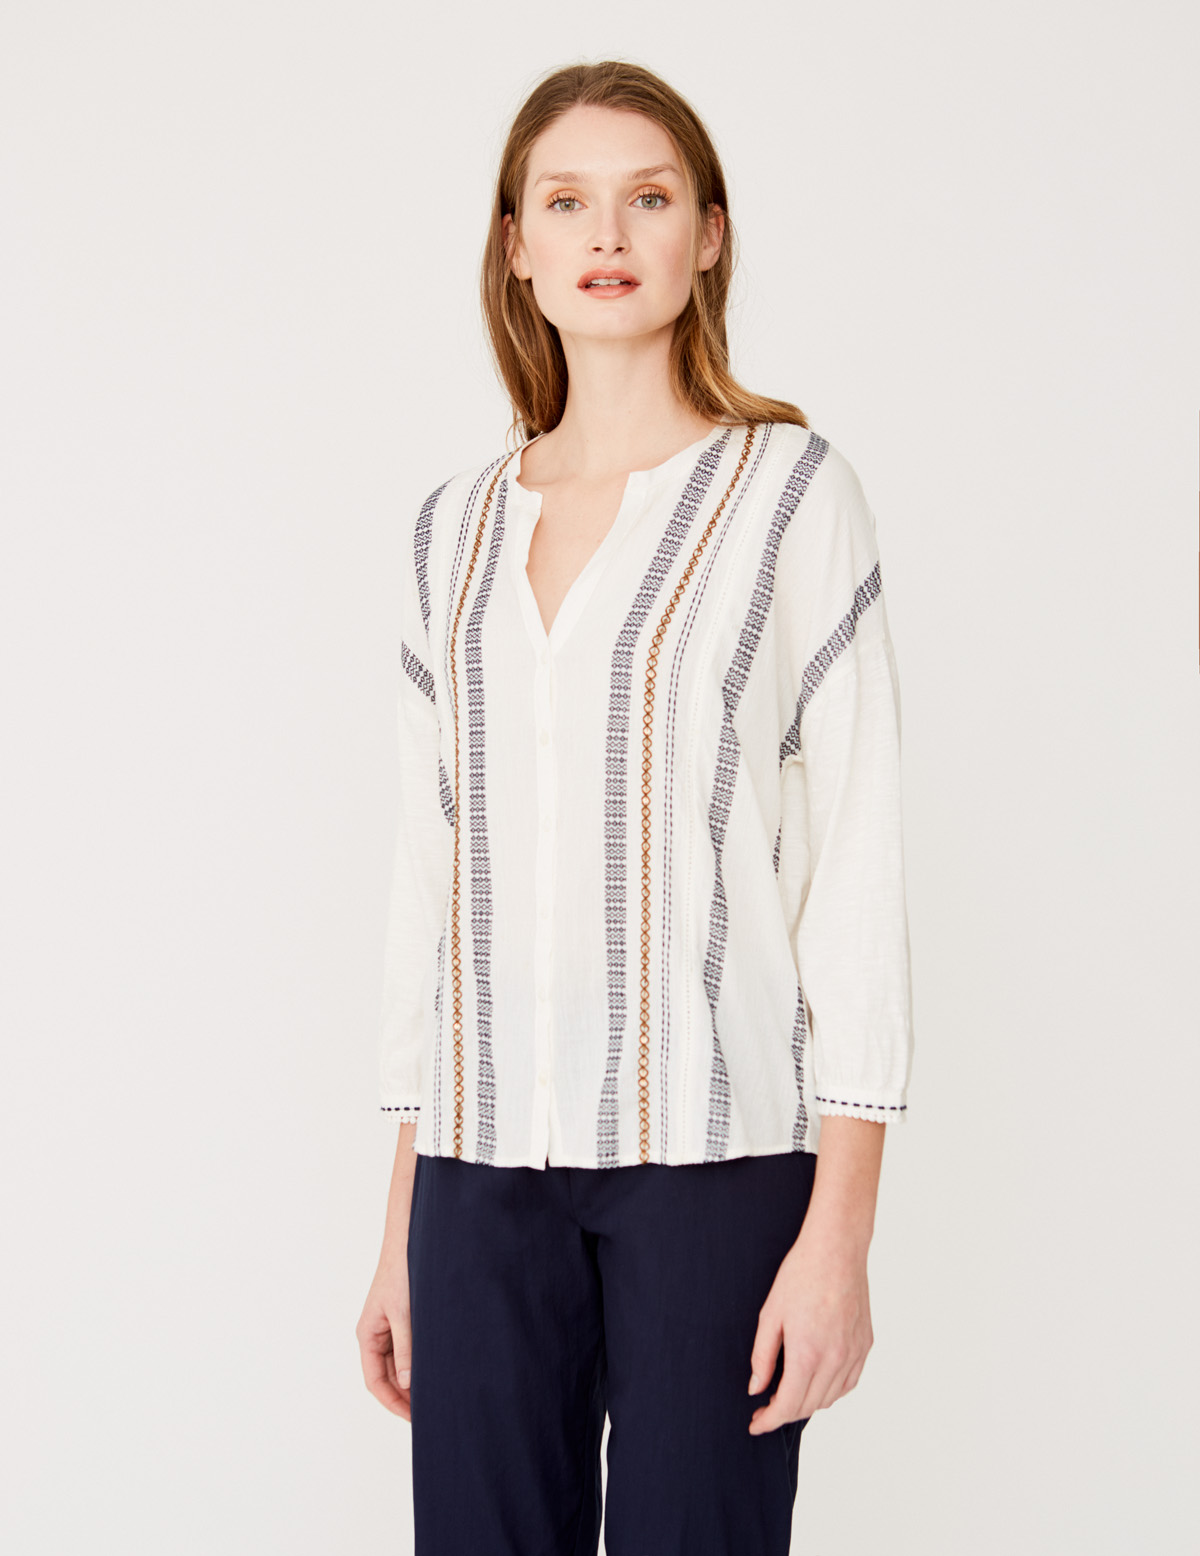 Jacquard and embroidered shirt